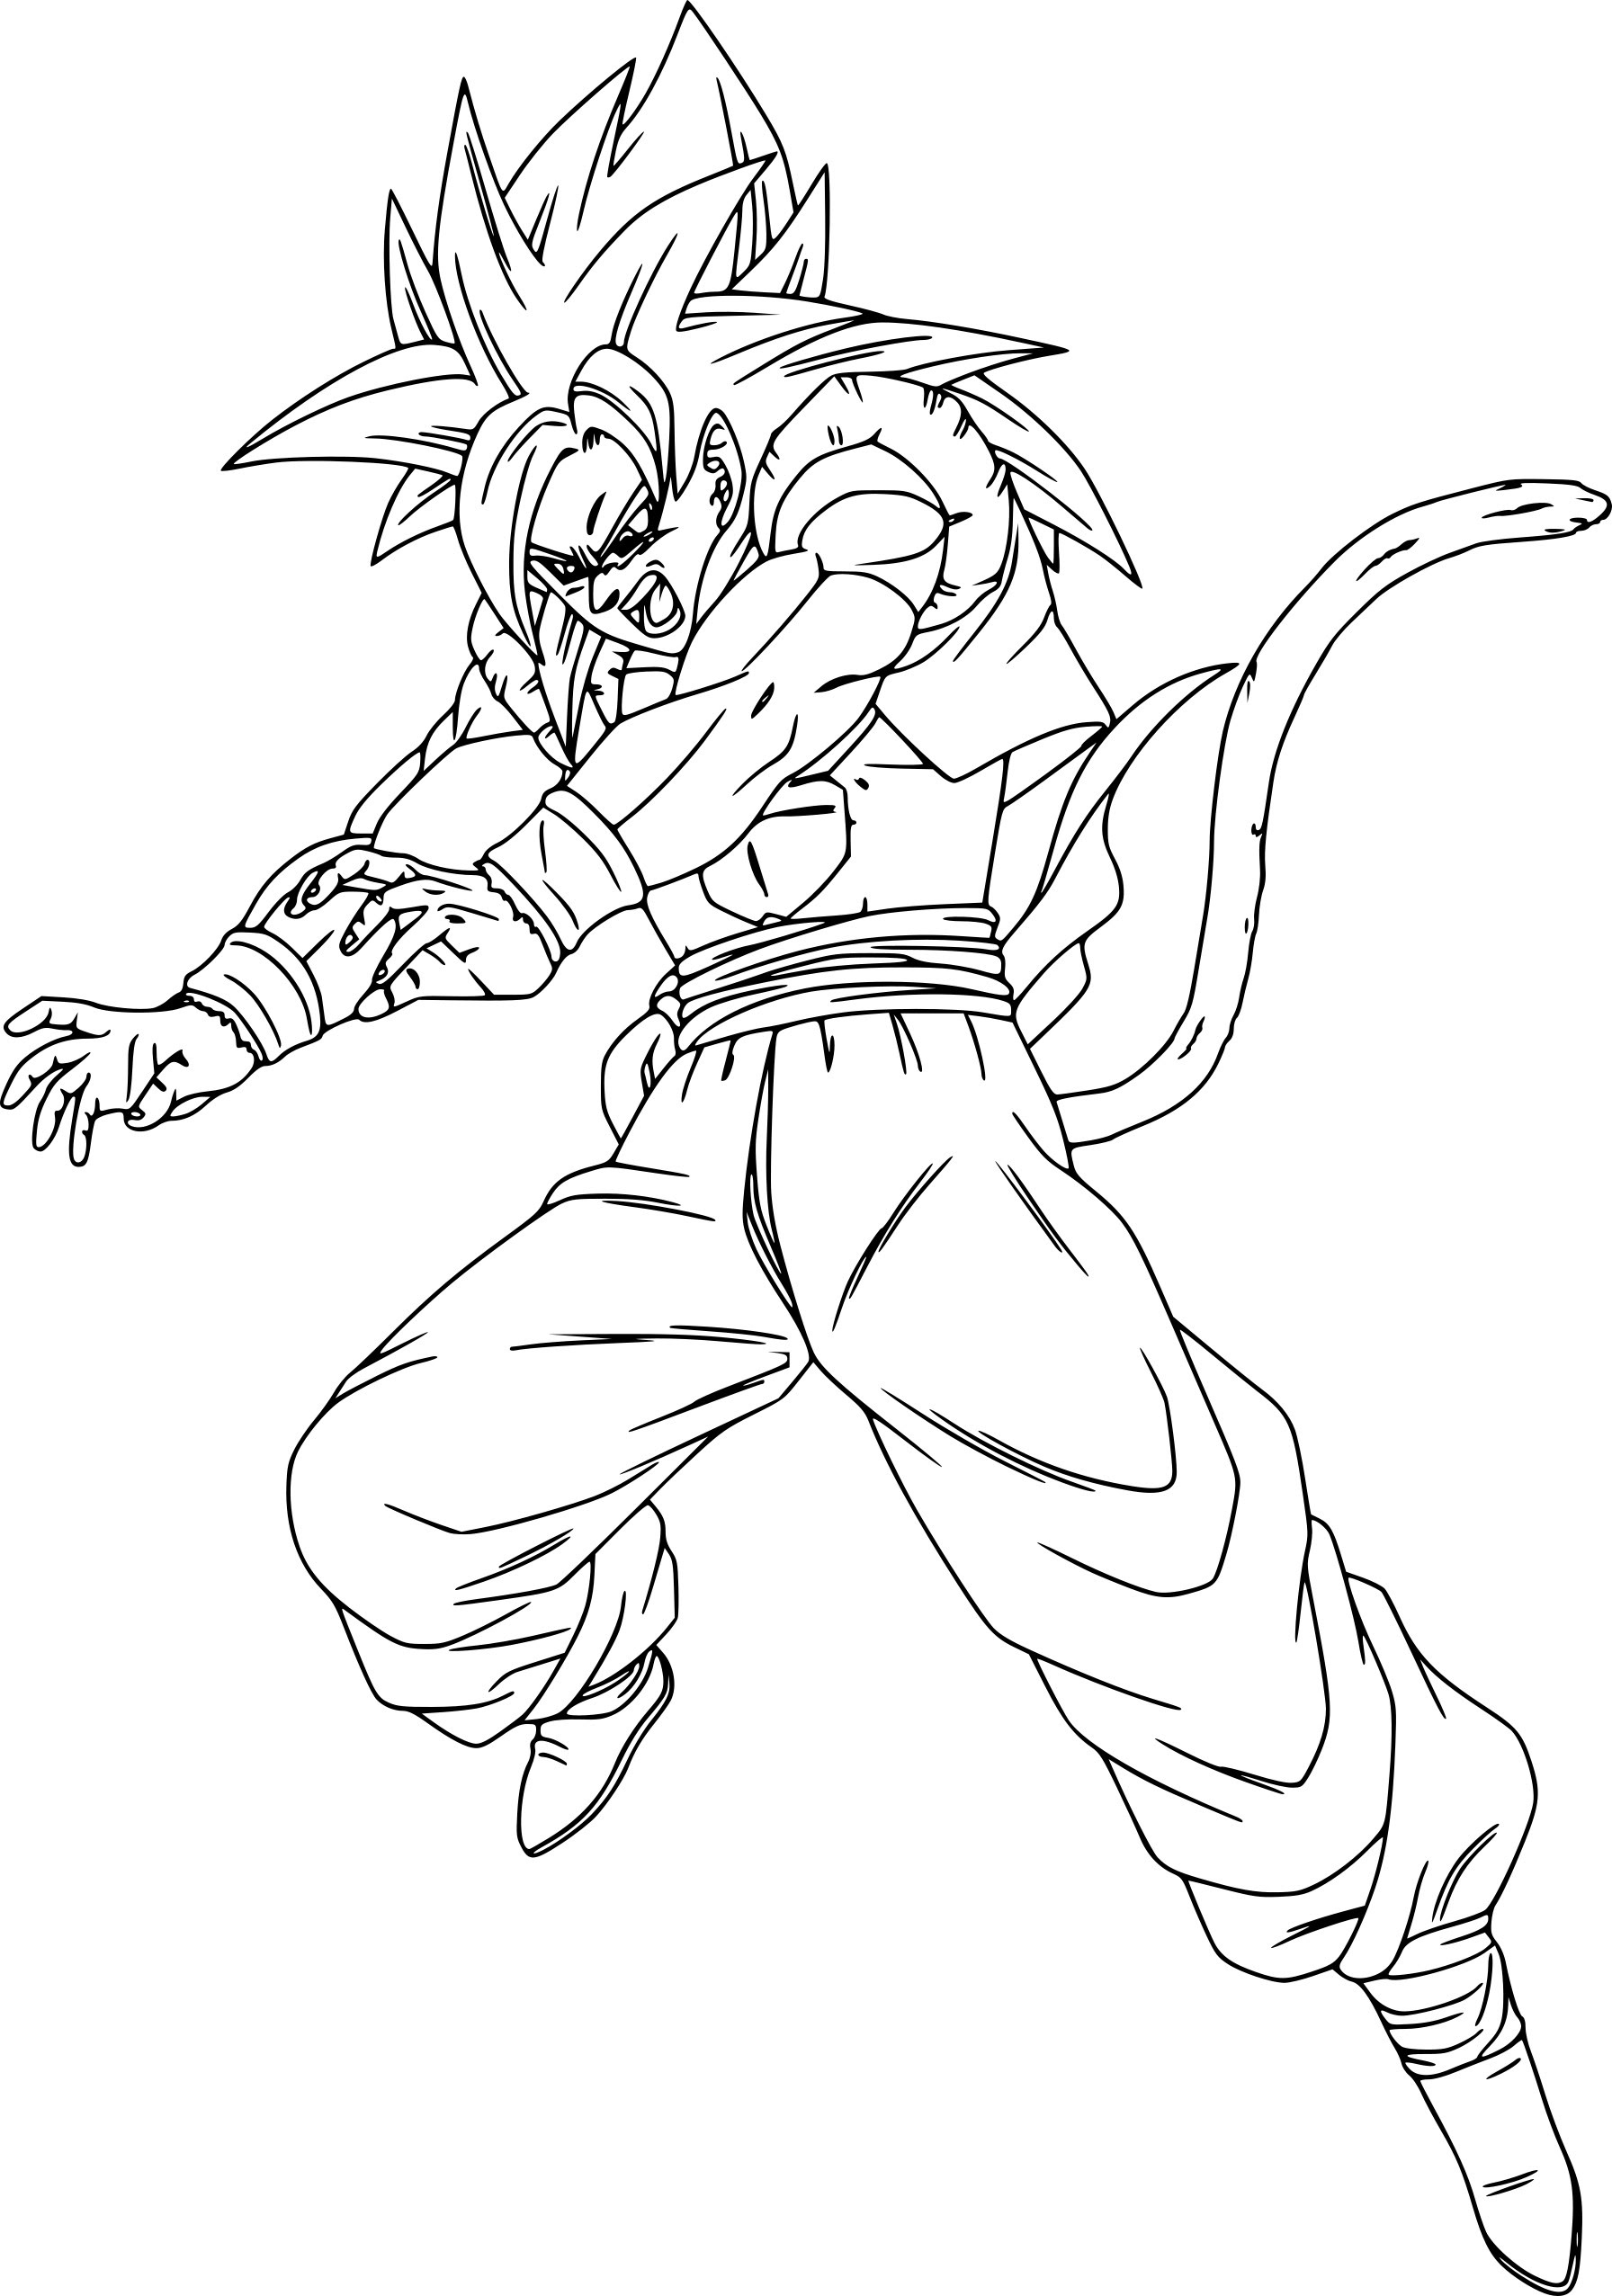 Coloriage Gogeta Dragon Ball Z à Imprimer